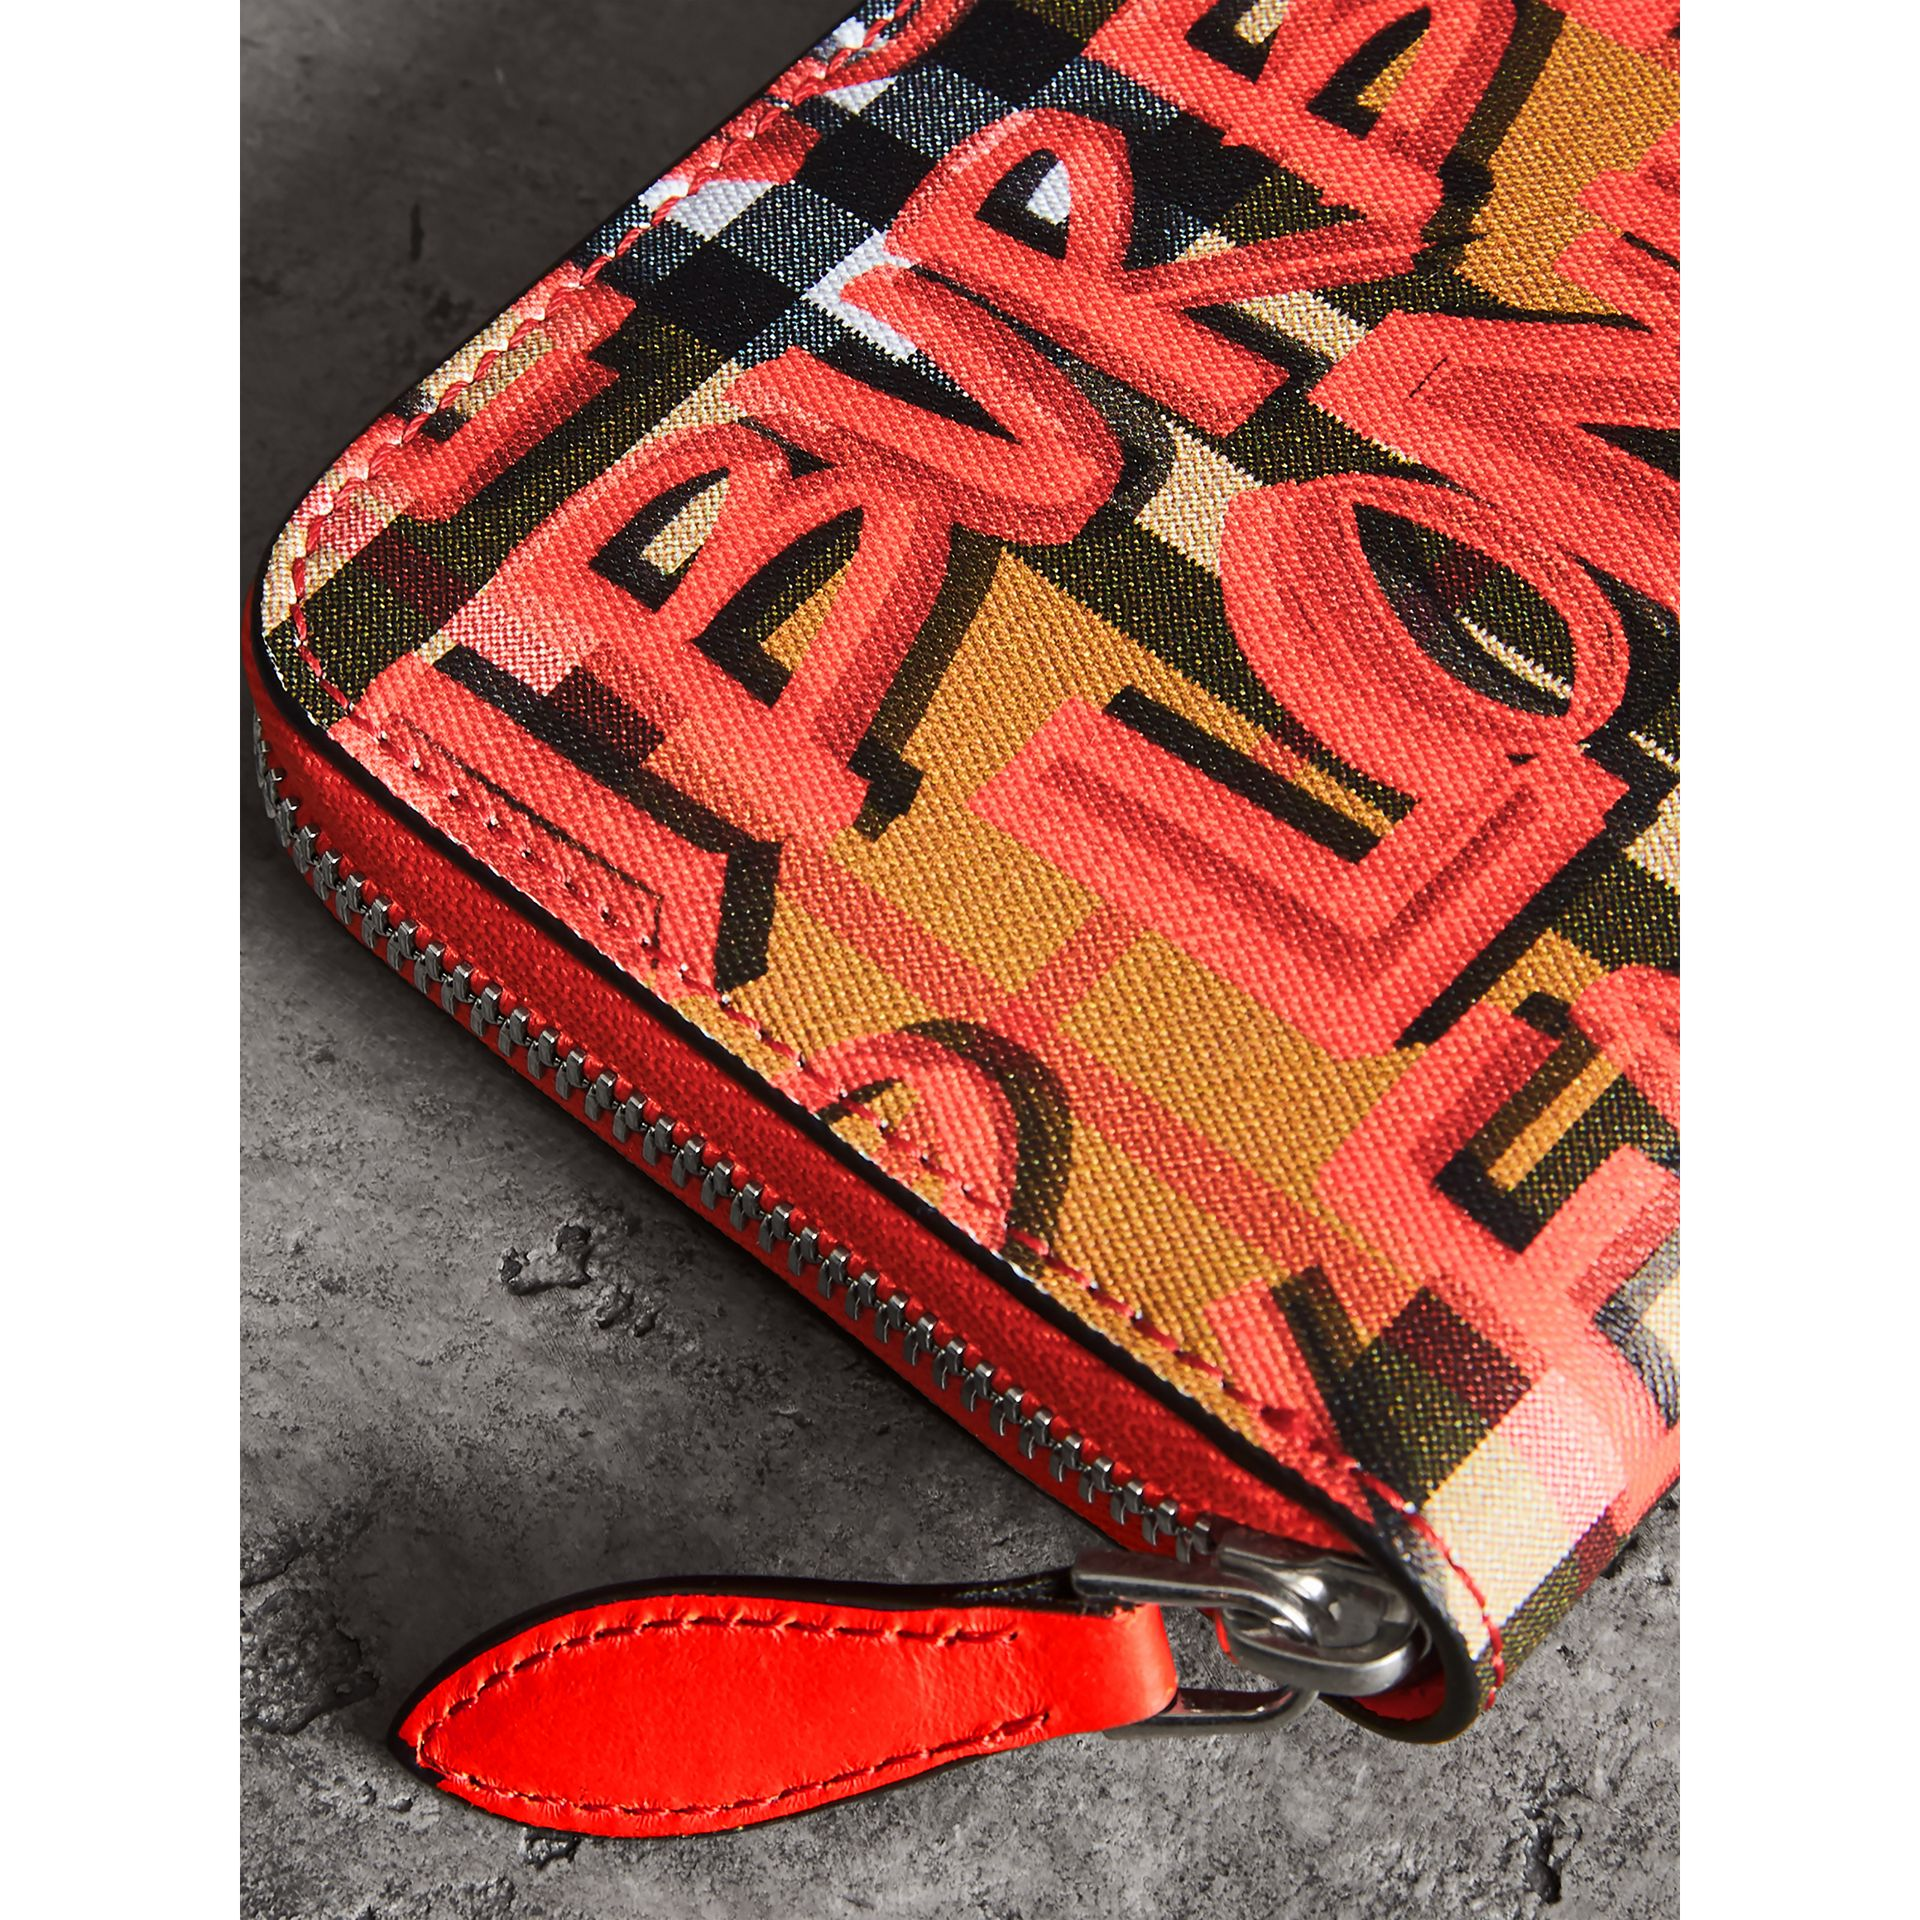 Graffiti Print Vintage Check Leather Ziparound Wallet in Red - Women | Burberry Singapore - gallery image 1